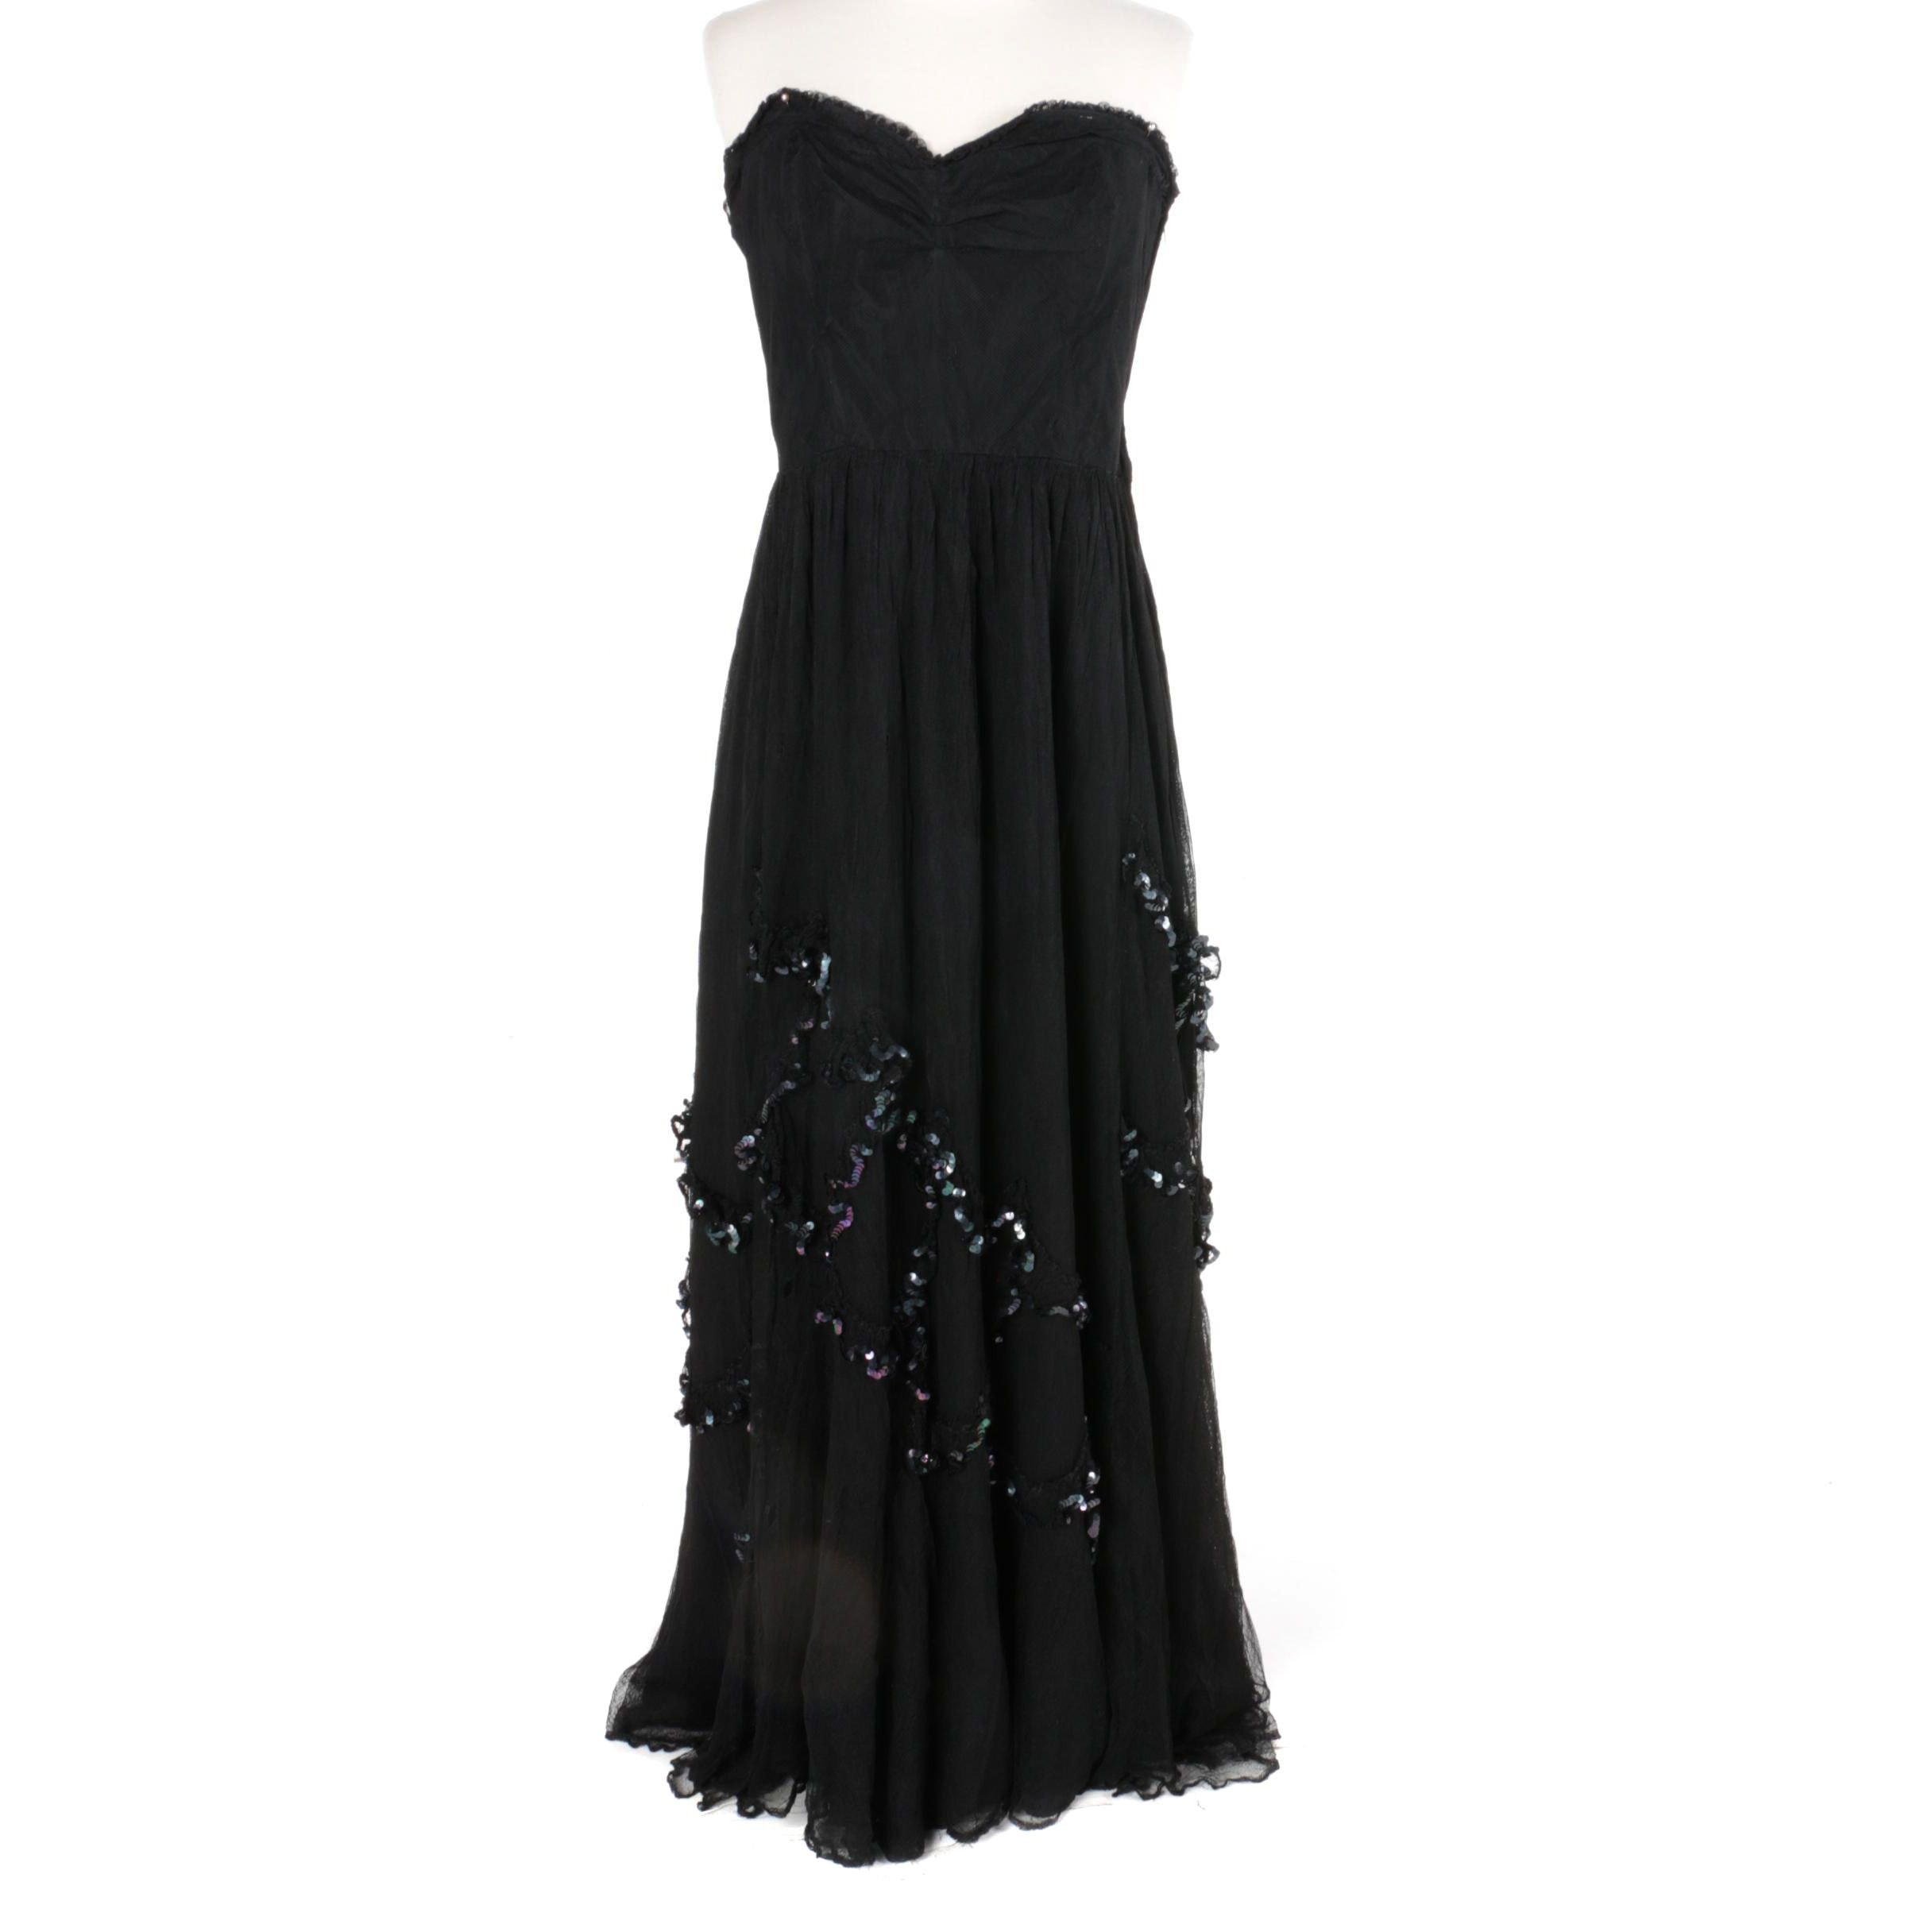 Women's Vintage Strapless Sequined Evening Gown